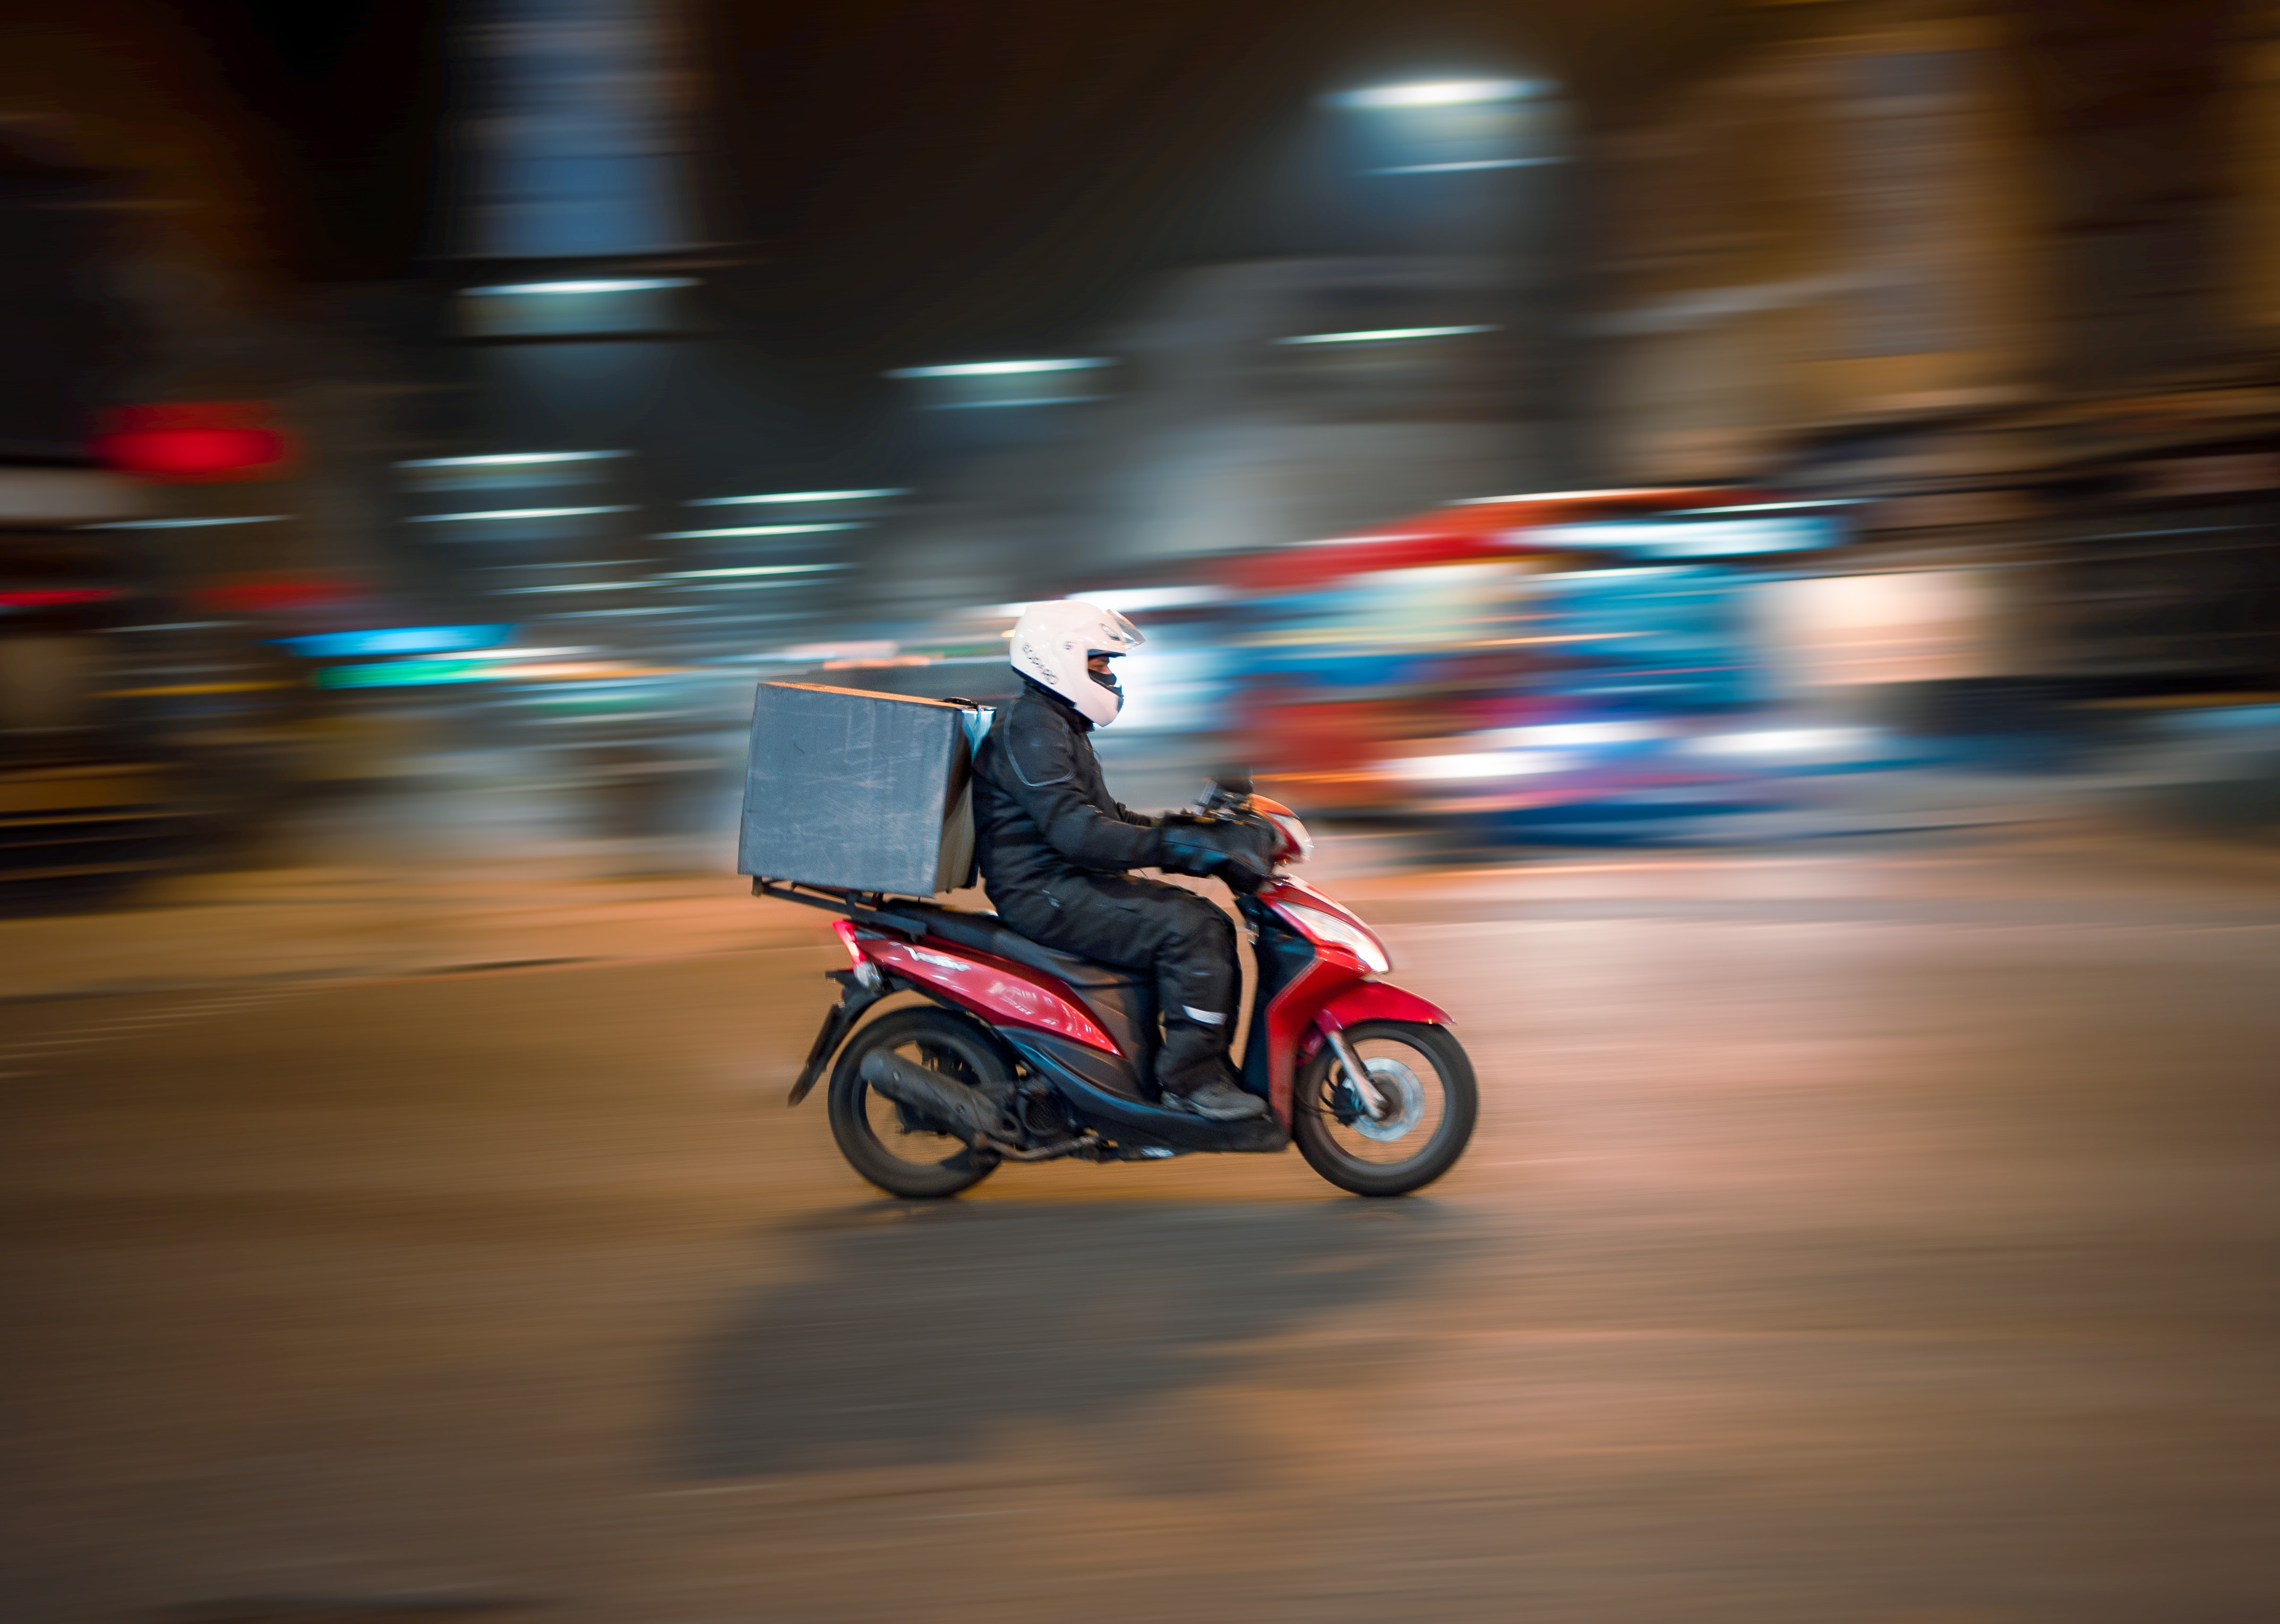 A delivery driver rides past the camera on a red motorbike.